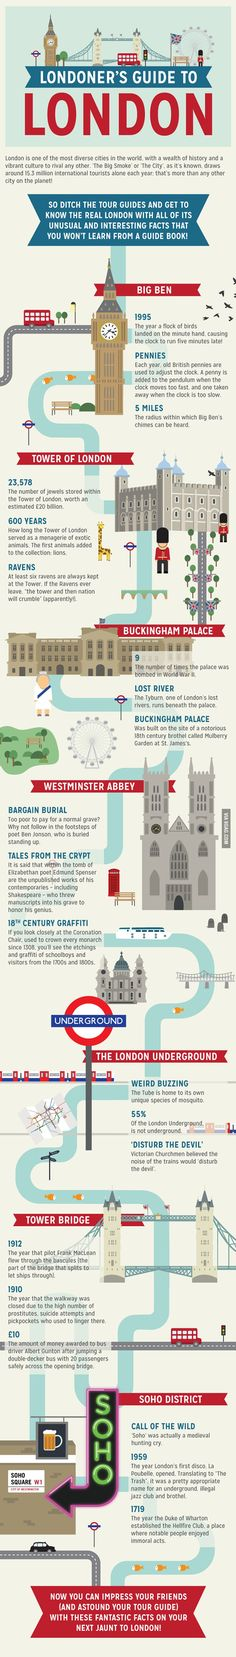 London As Londoners Do: What You Need To Know If You're Going To London